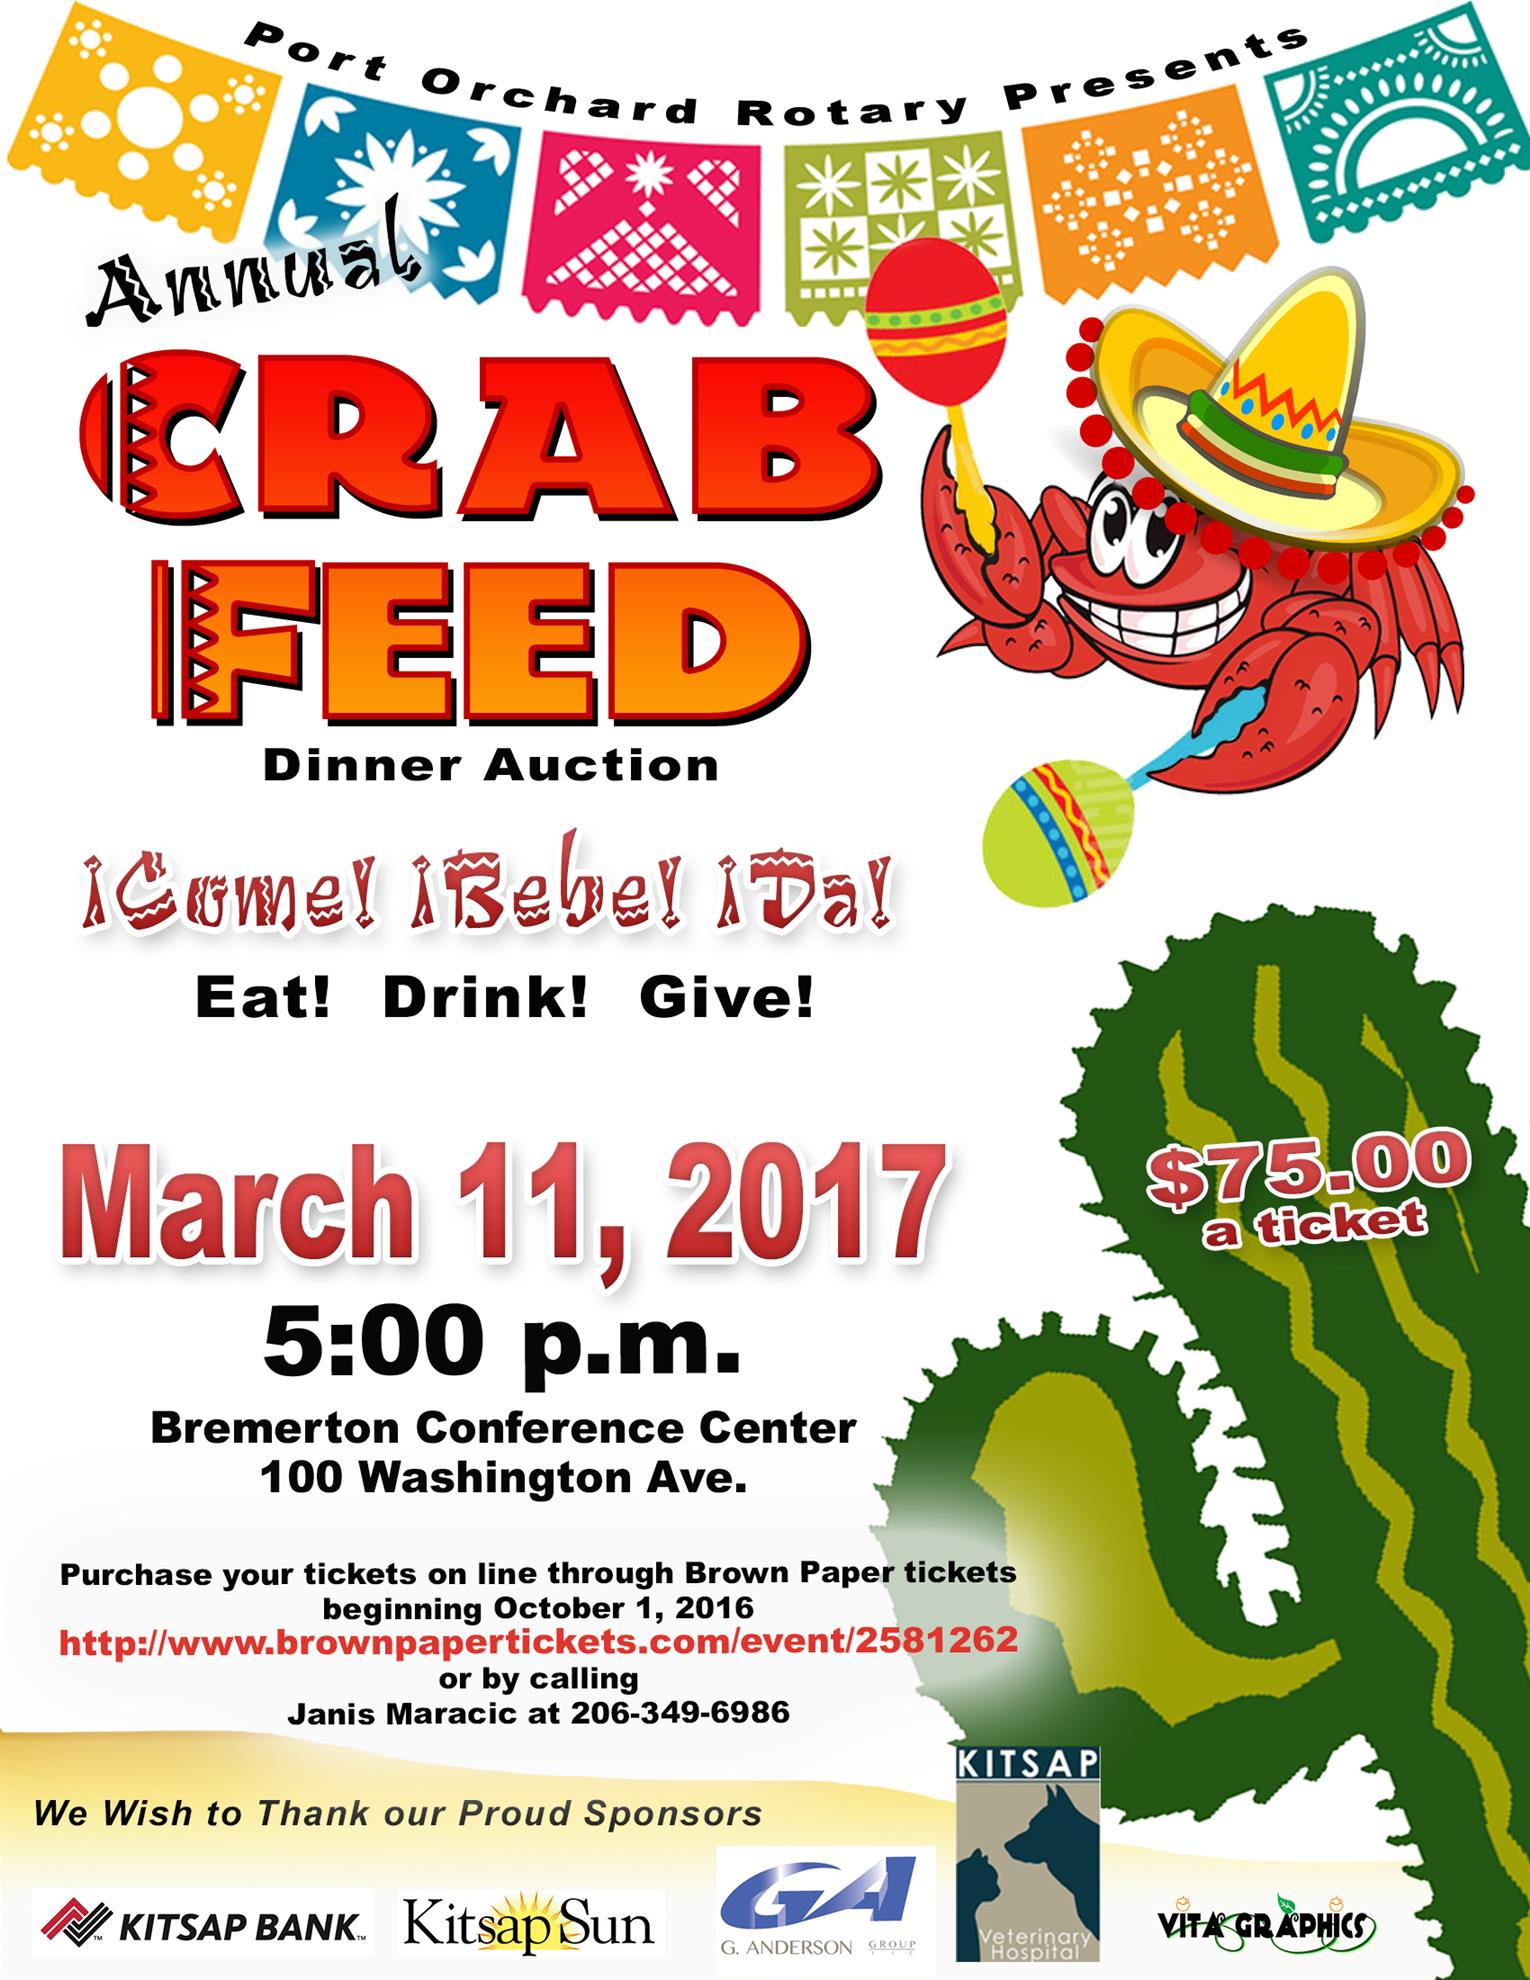 Olympic cycle port orchard - Port Orchard Rotary S 40th Annual Crab Feed And Auction Will Be A Mexican Fiesta Theme March 11 2017 At The Kitsap Conference Center Beginning At 5 00pm